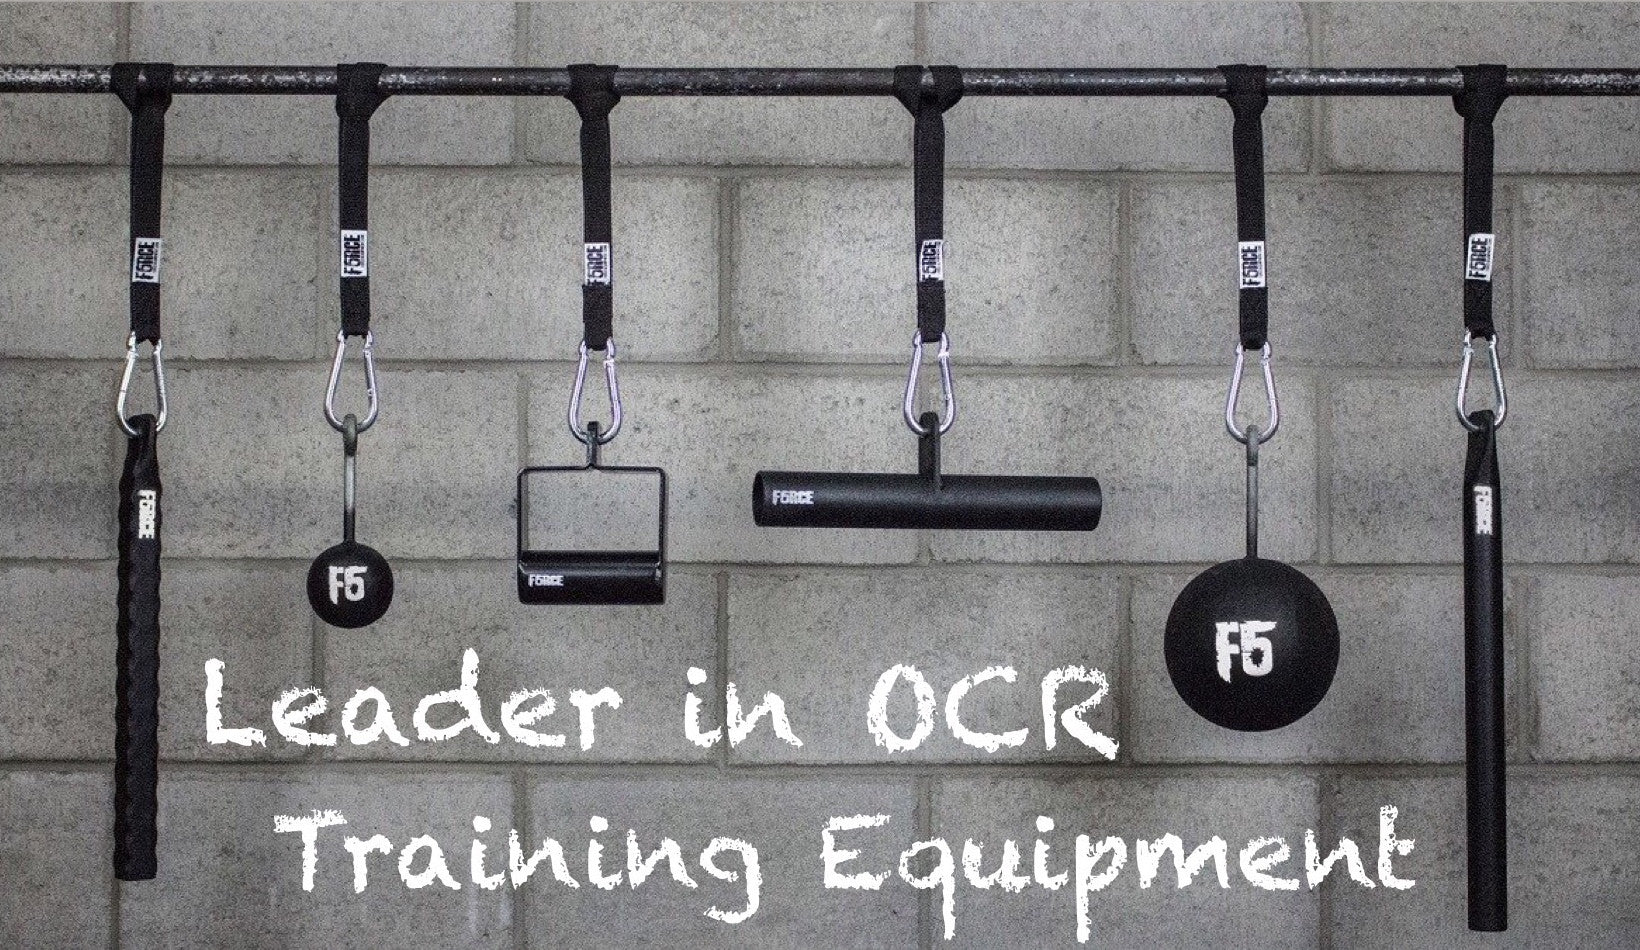 Leader in OCR training equipement